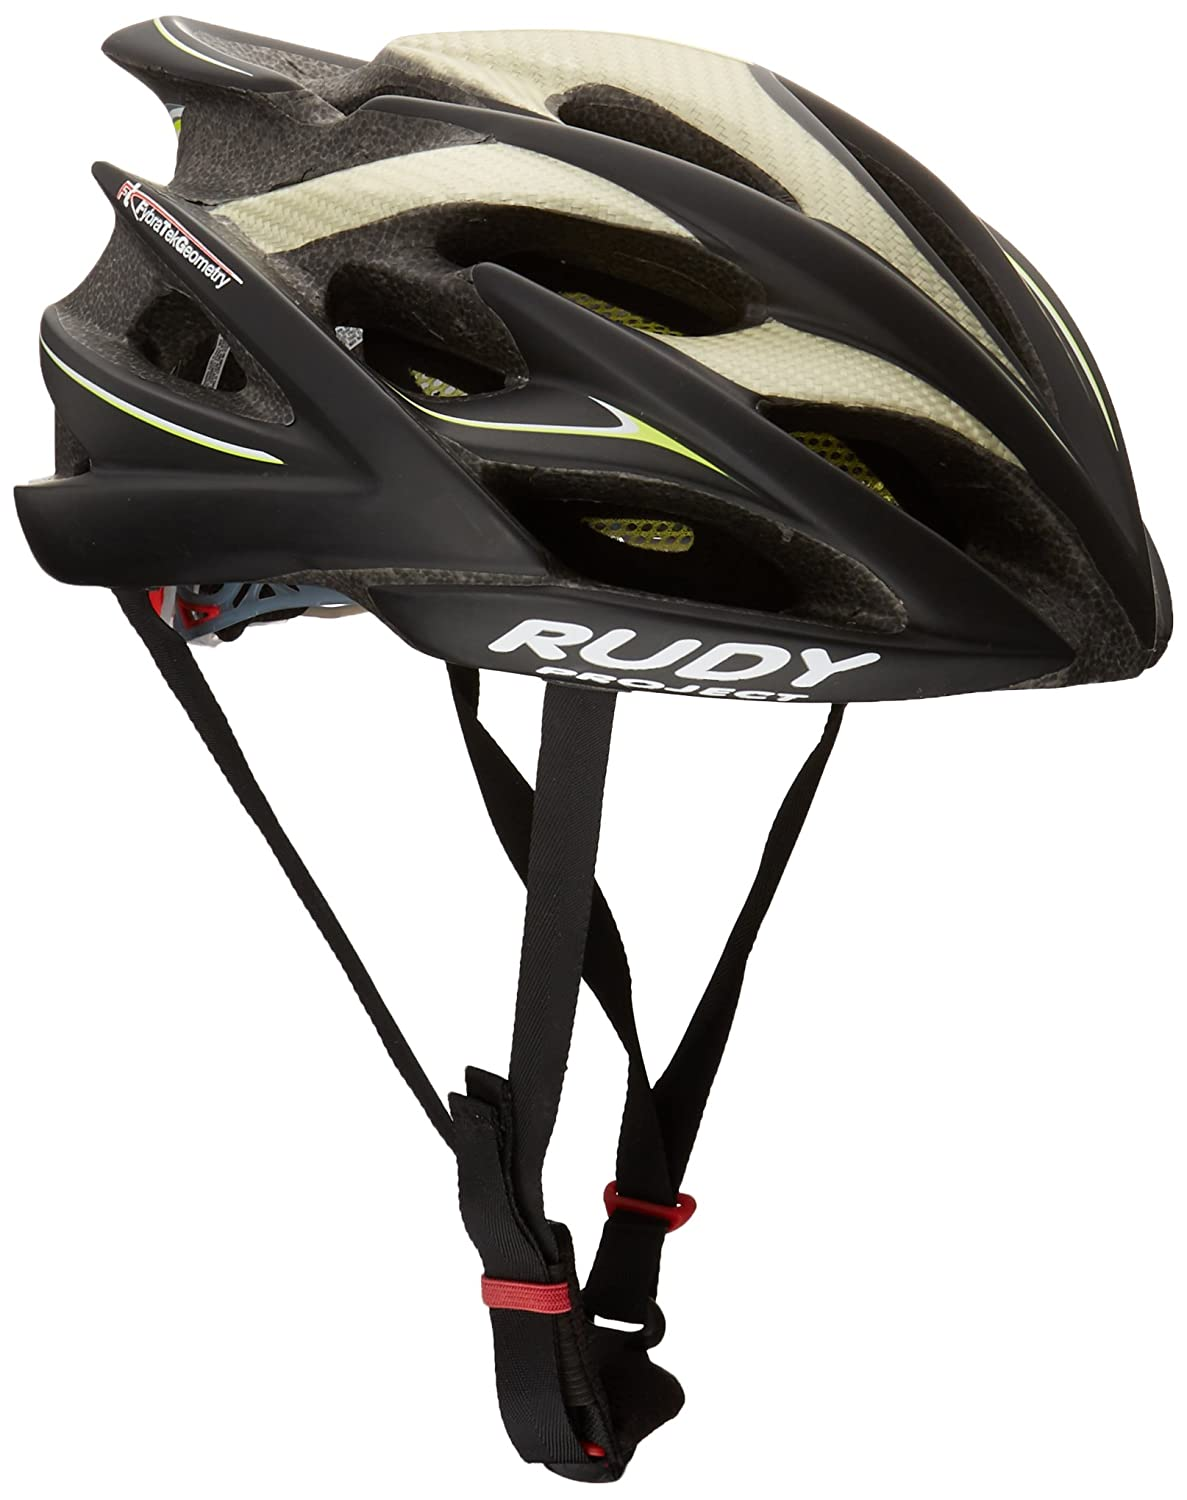 Rudy Project Windmax - Casco de Carretera - Negro 2018 Casco de Bicicleta